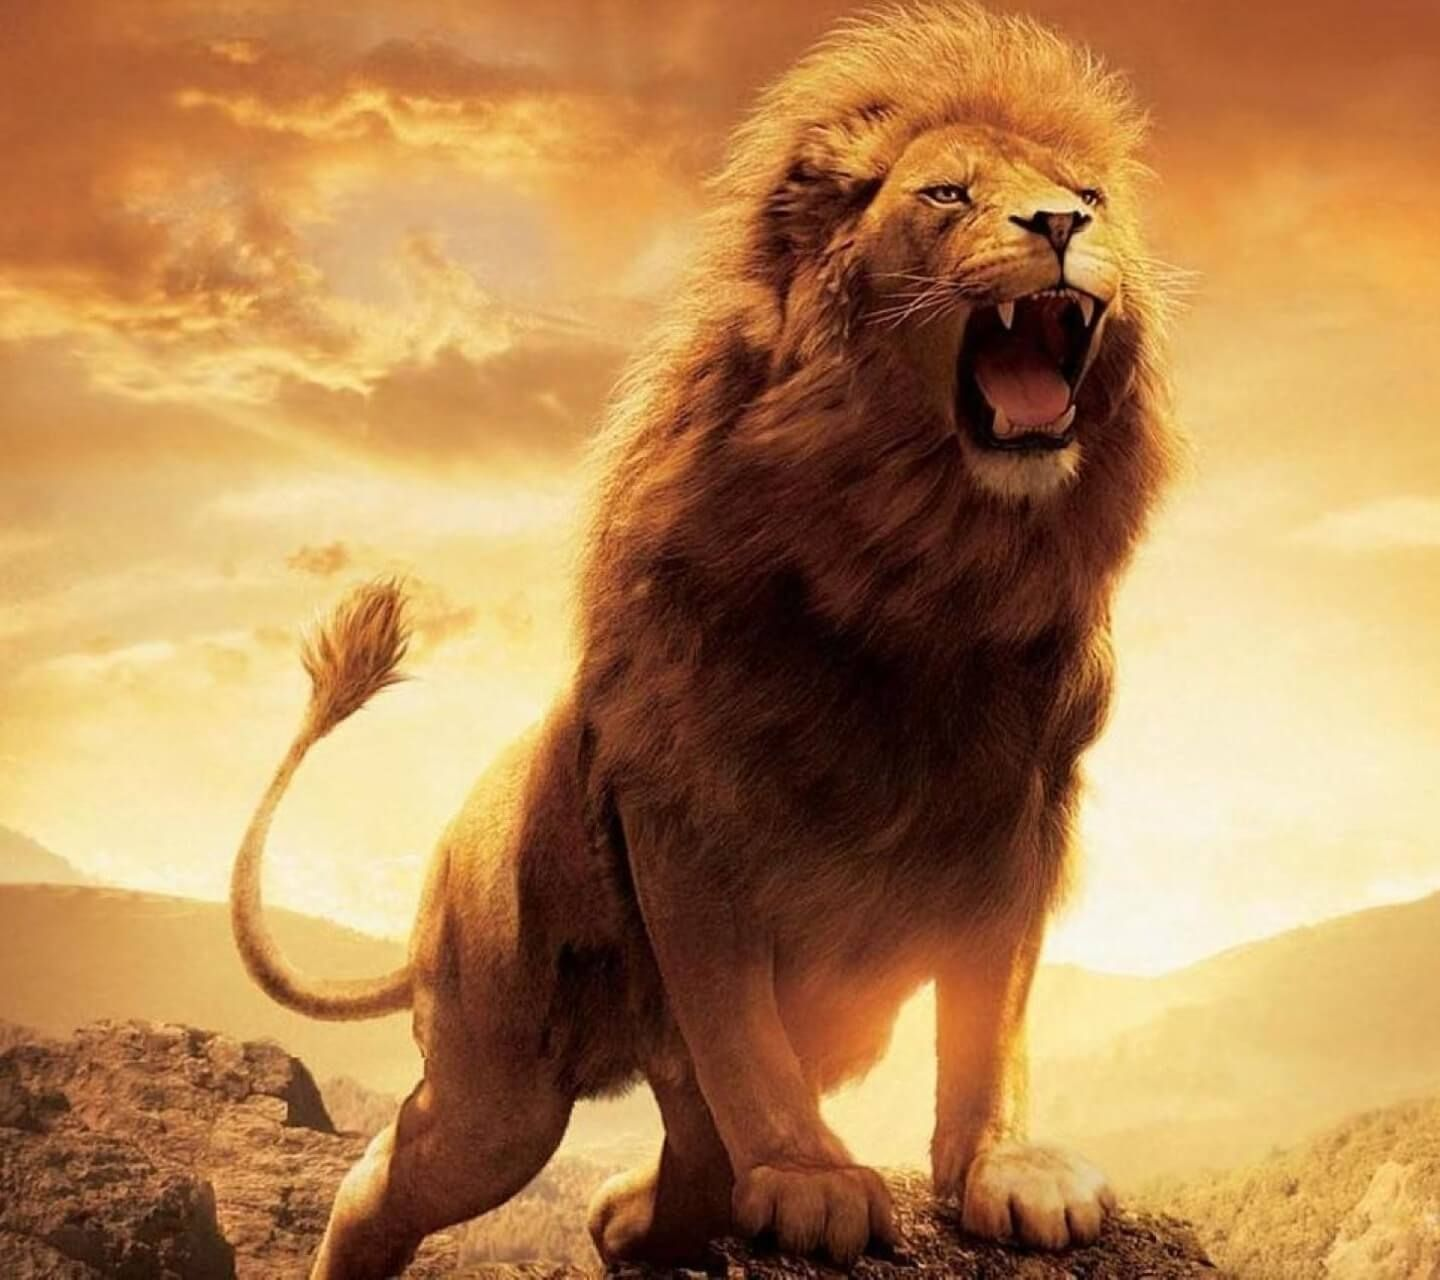 Lion HD Wallpapers Backgrounds Wallpaper 1920×1080 Picture Of A Lion Wallpapers (31 Wallpapers ...